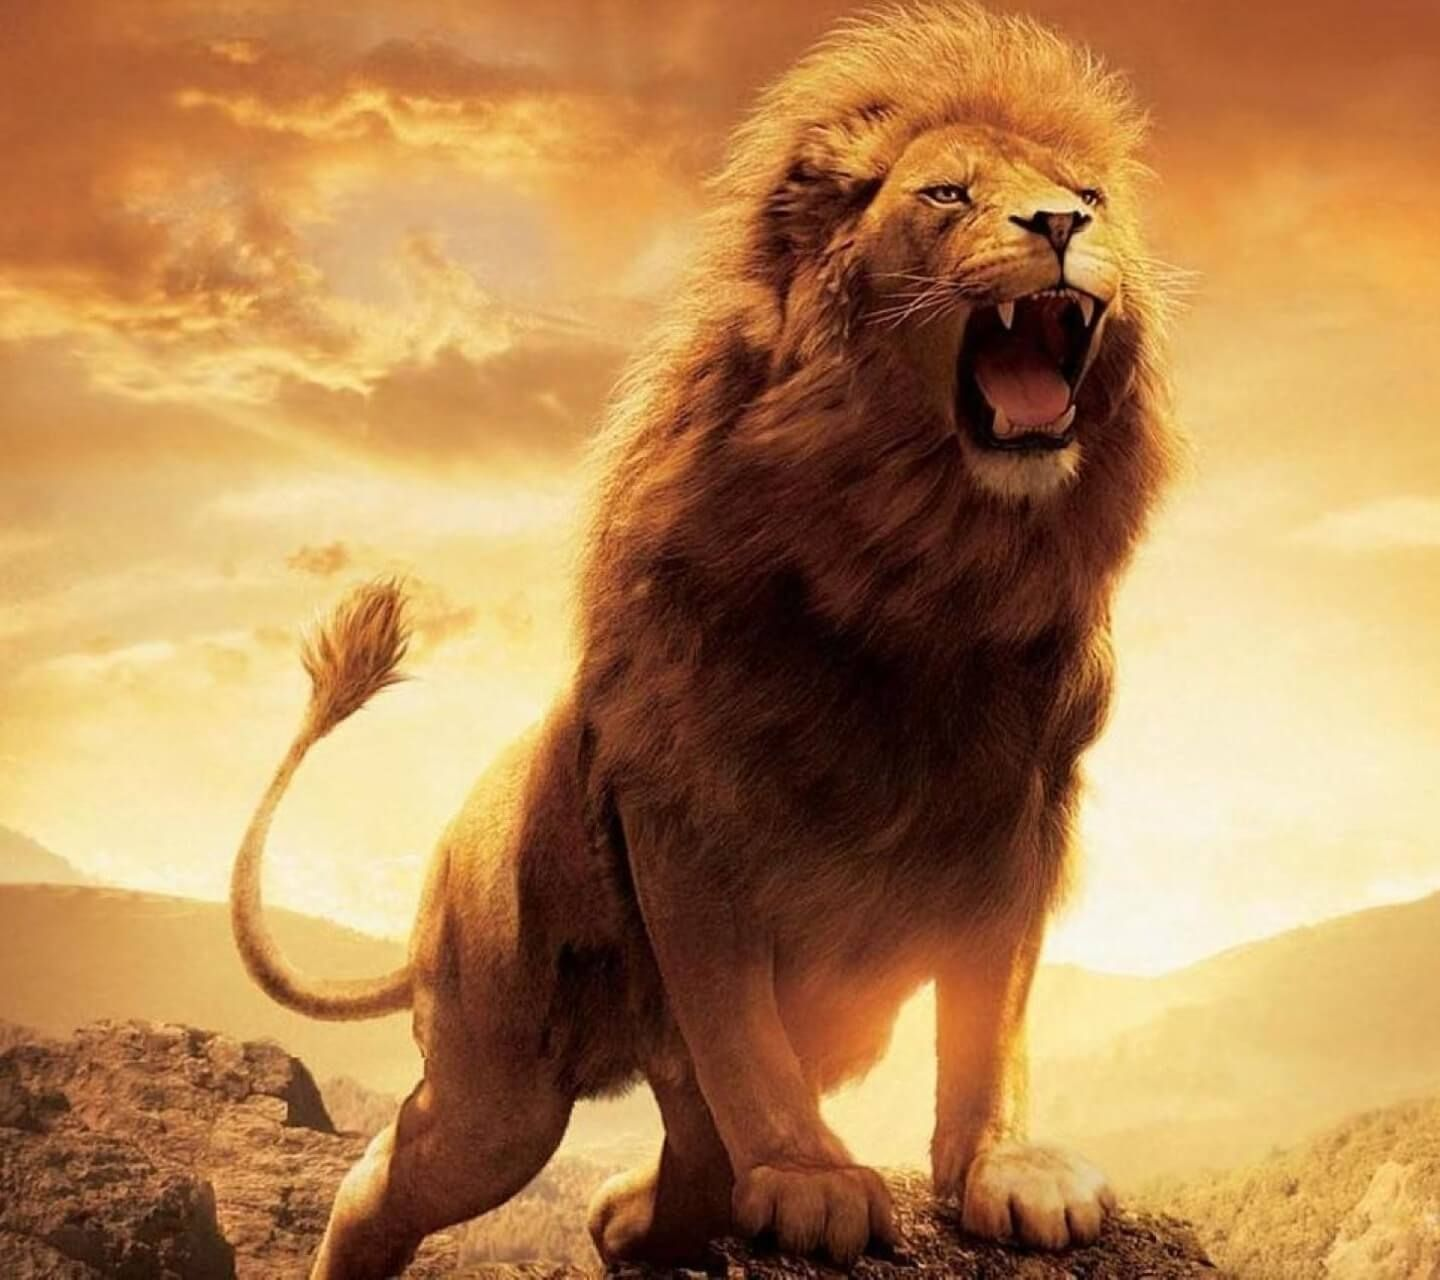 Lion HD Wallpapers Backgrounds Wallpaper 1920×1080 Picture Of A Lion Wallpapers (31 Wallpapers ...